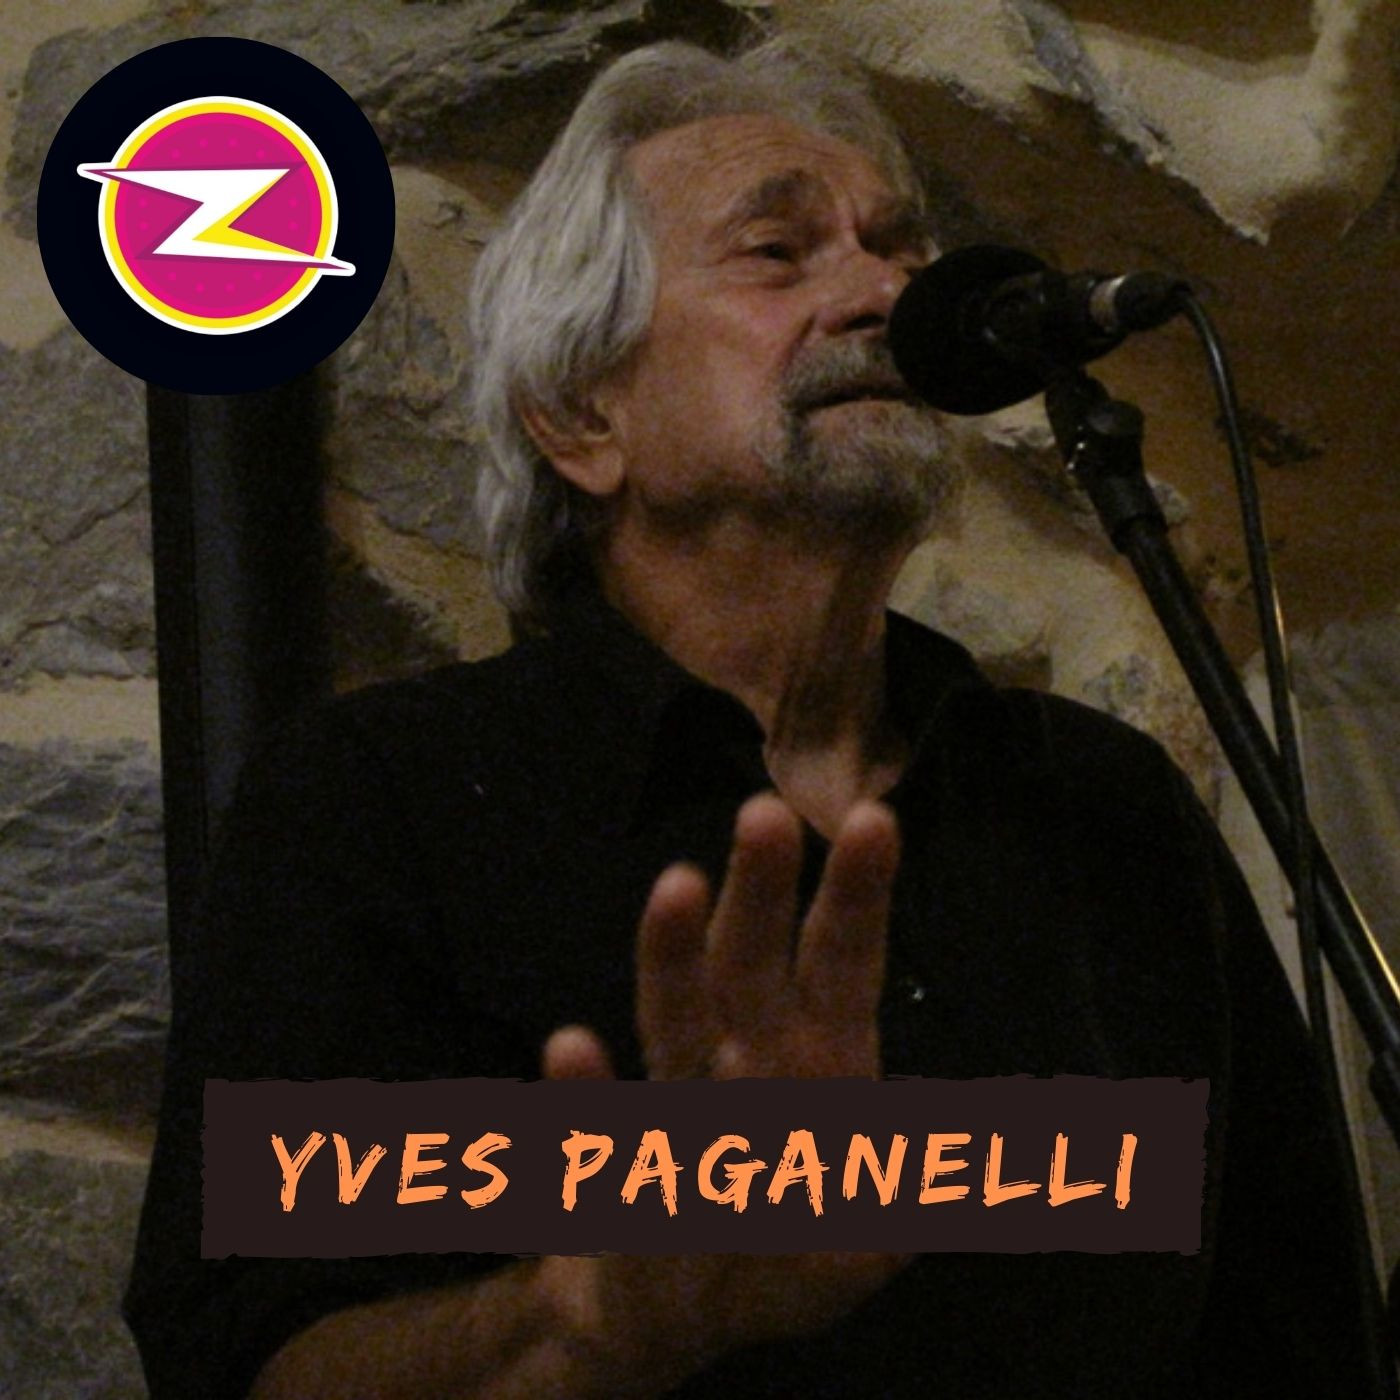 Yves Paganelli